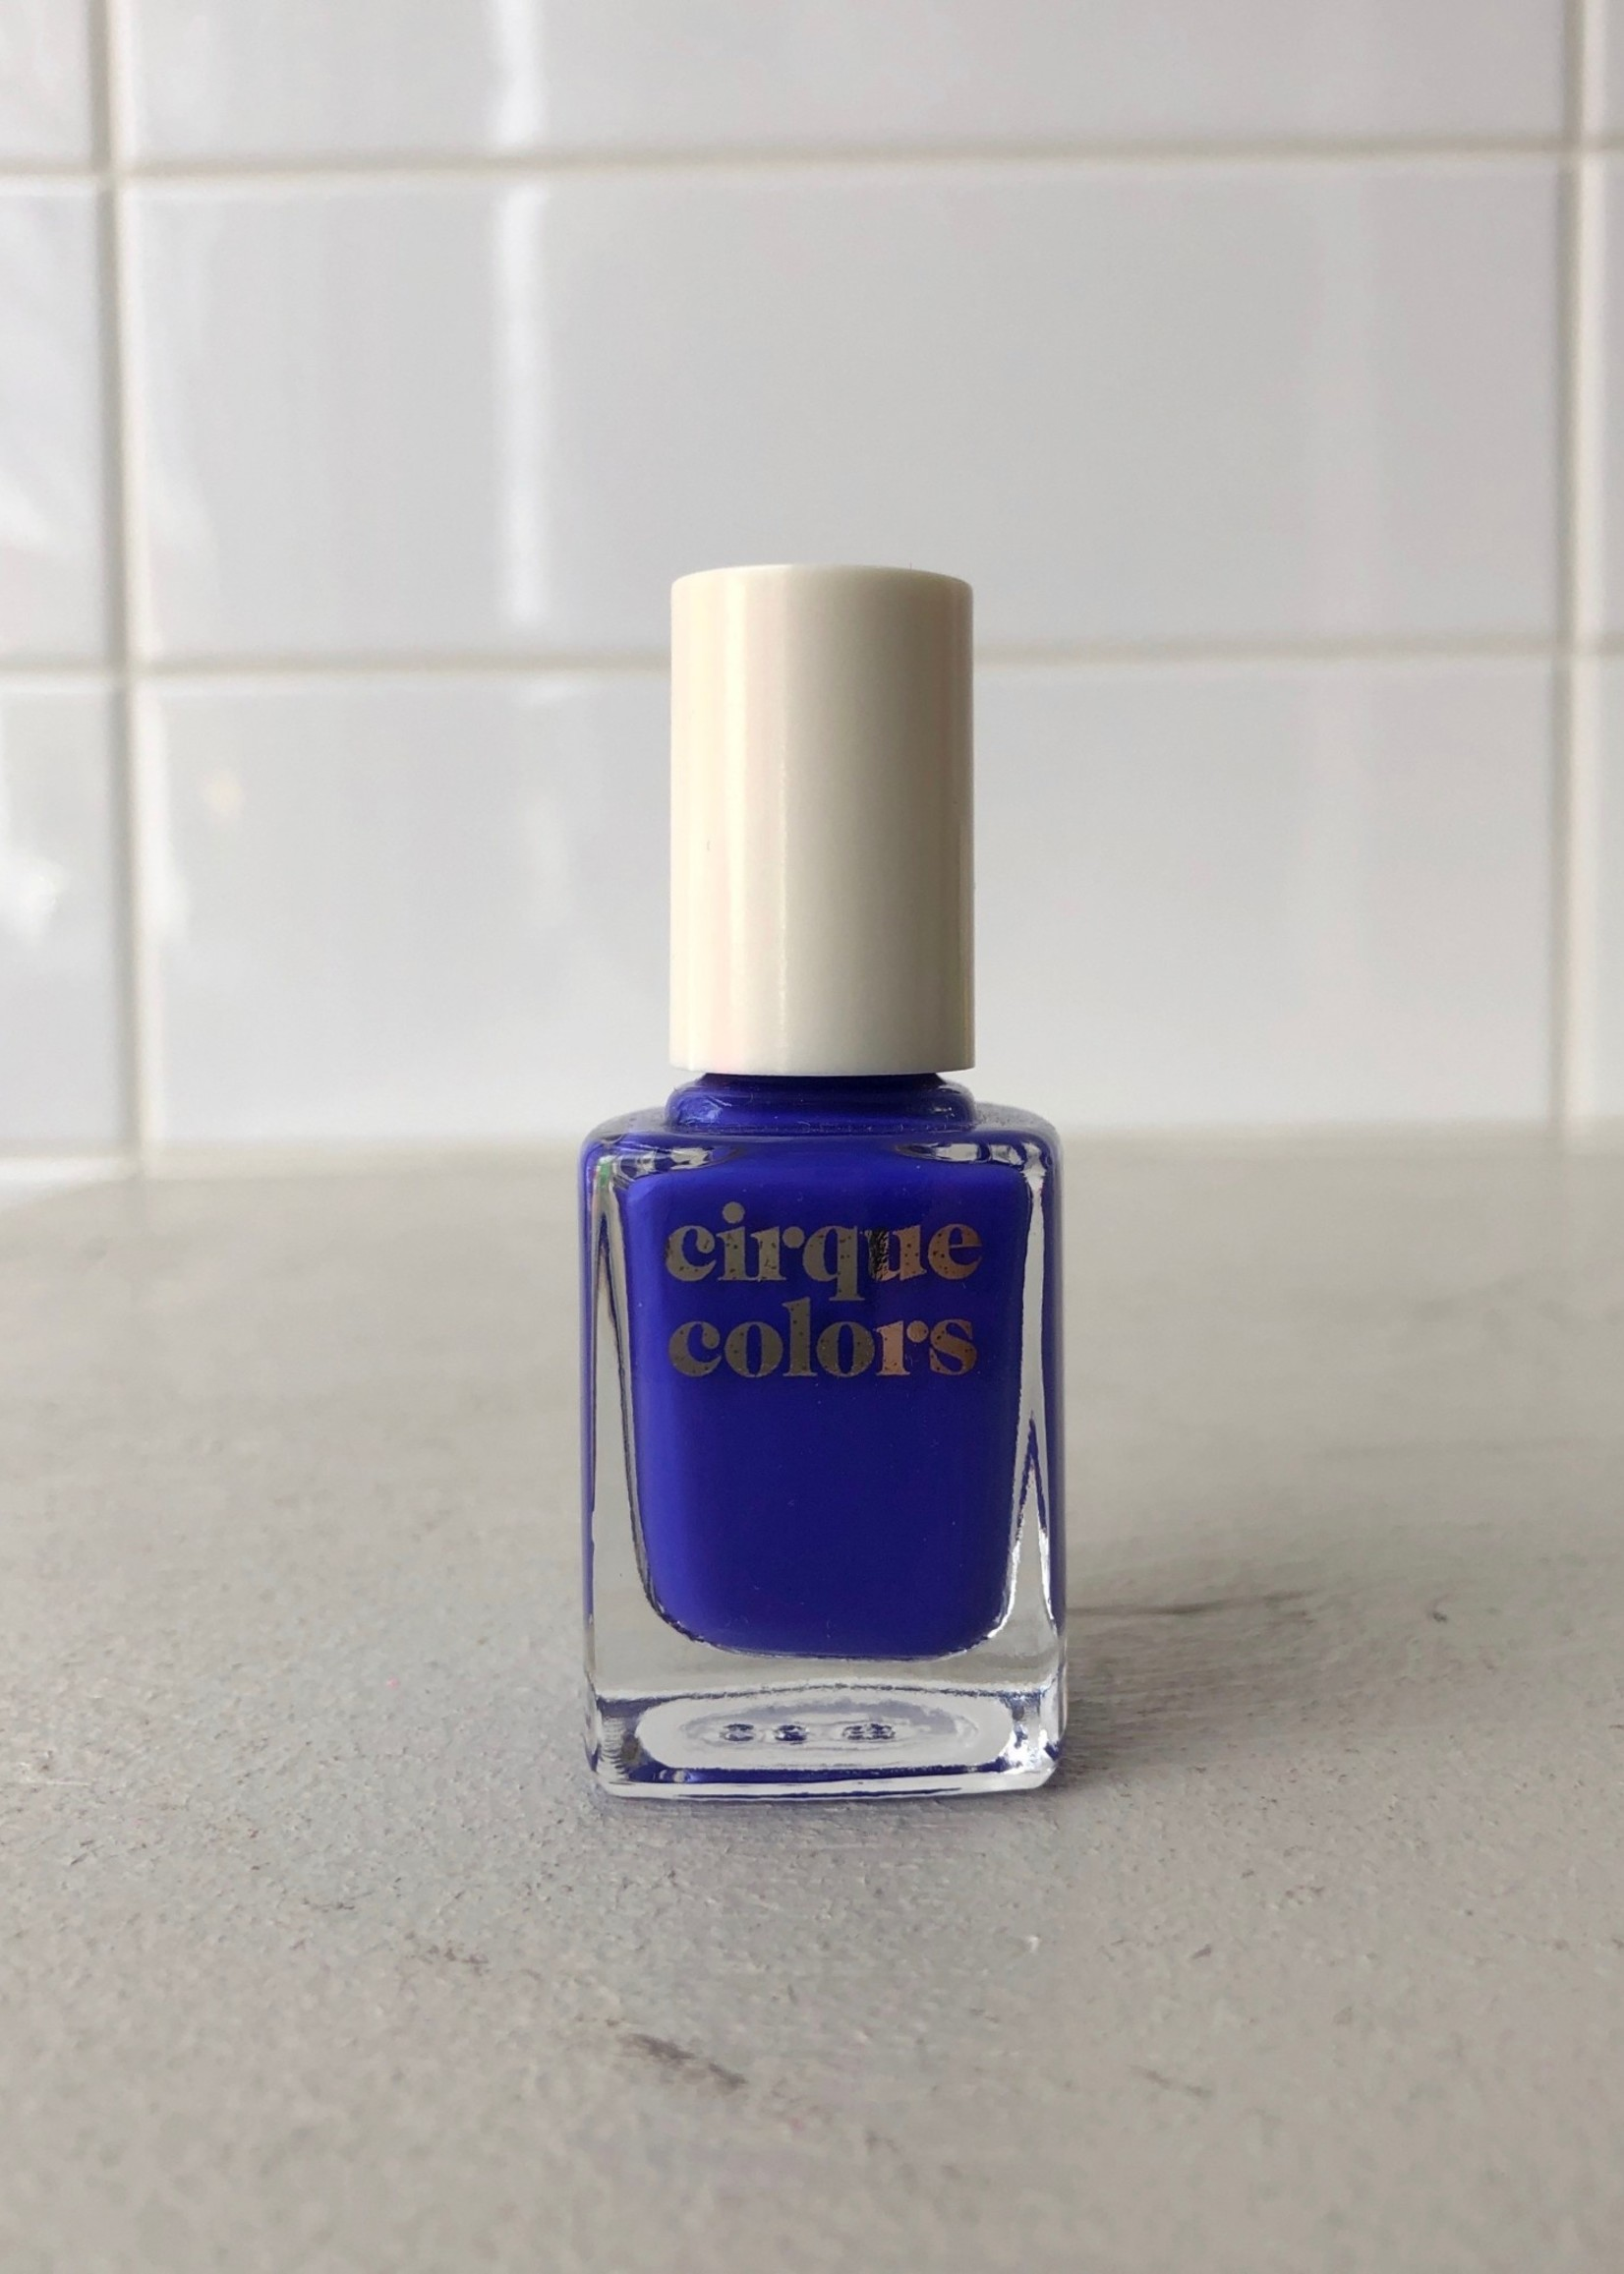 Cirque Colors Vice Nail Polishes by Cirque Colors